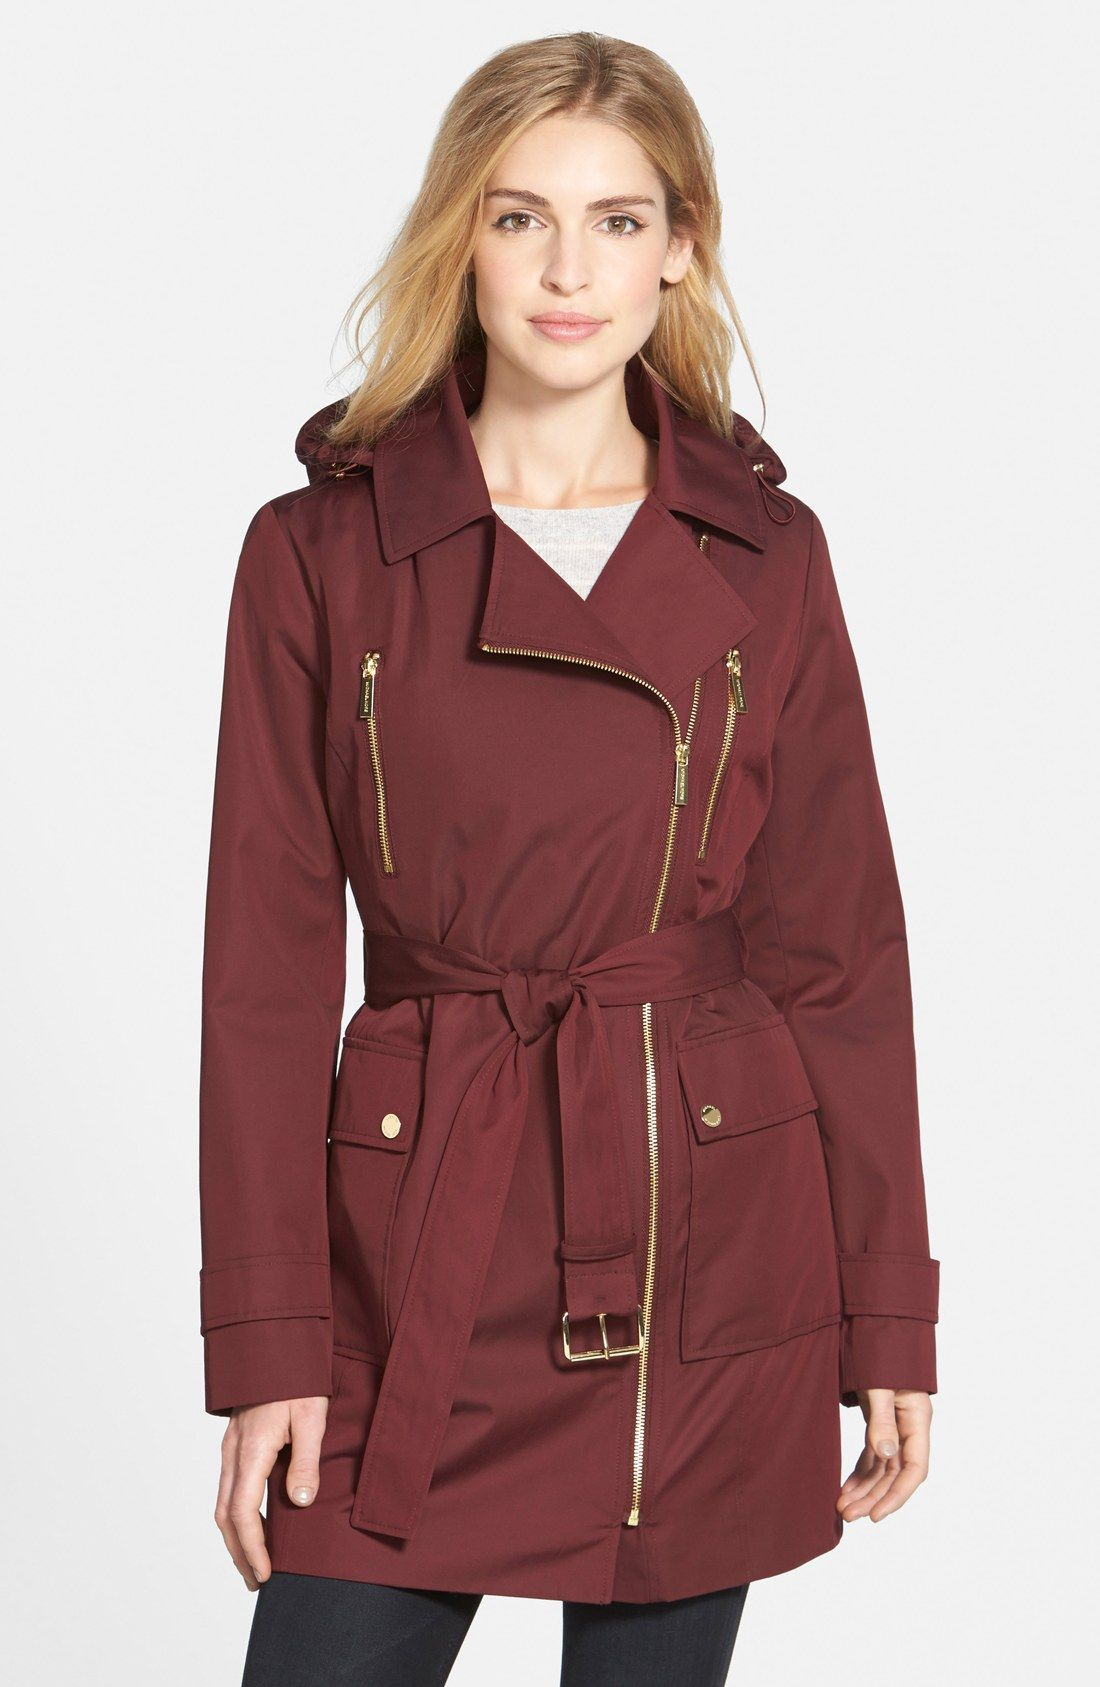 Trench coat for what temperature